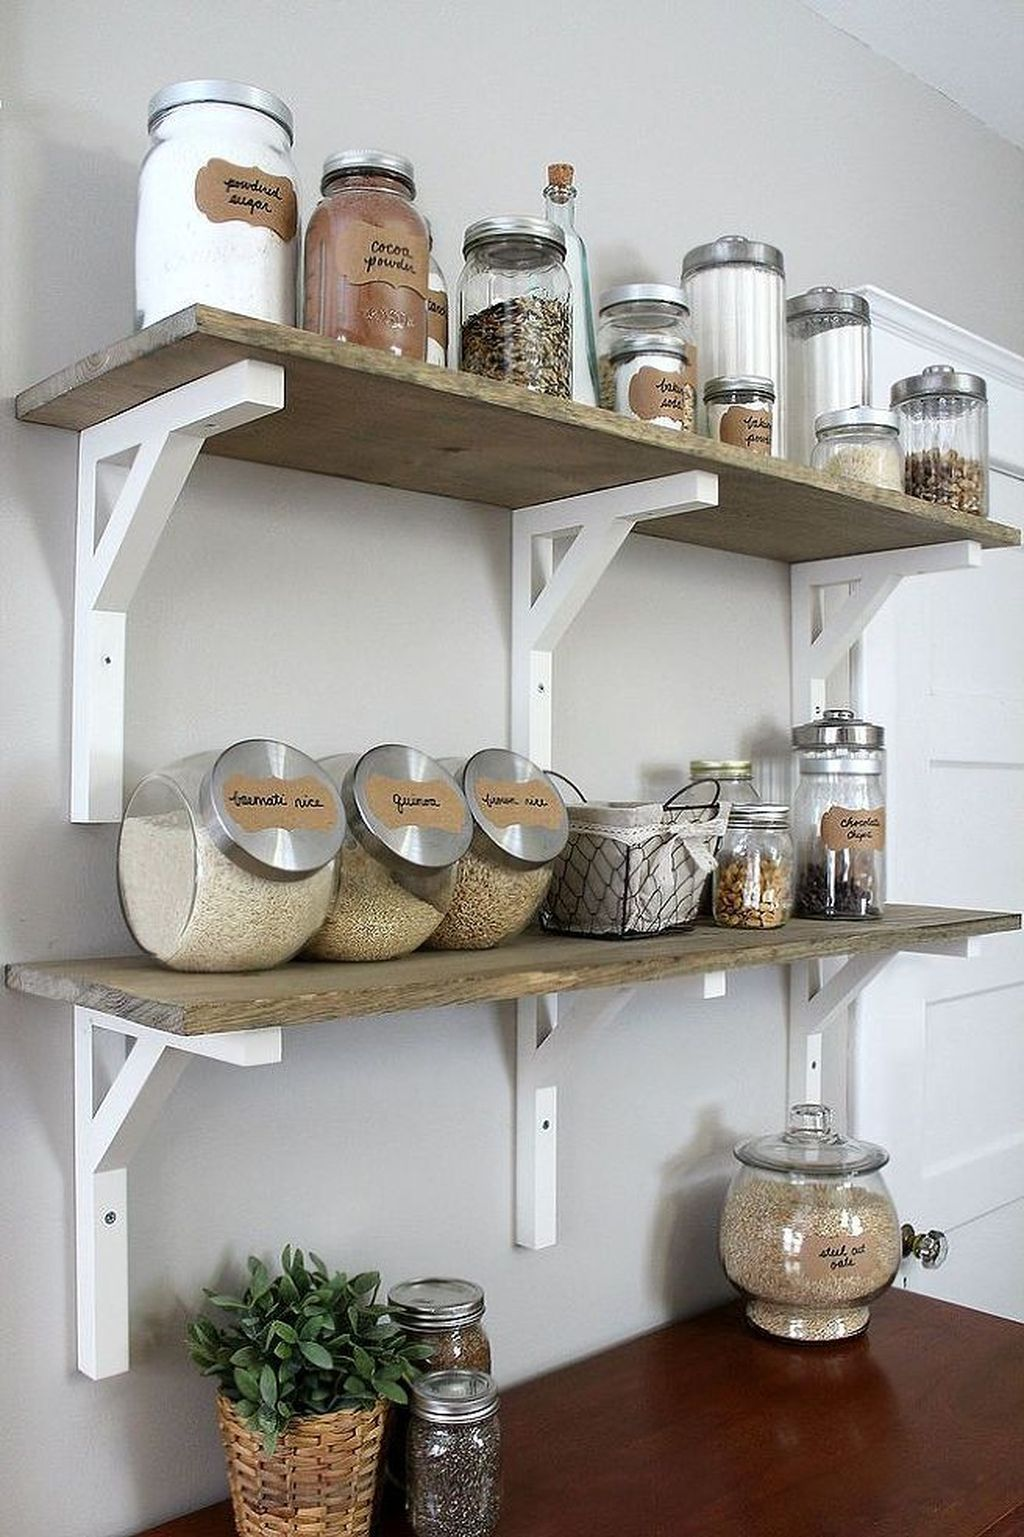 creative space saving kitchen organization ideas 21 diy on creative space saving cabinets and storage ideas id=68623